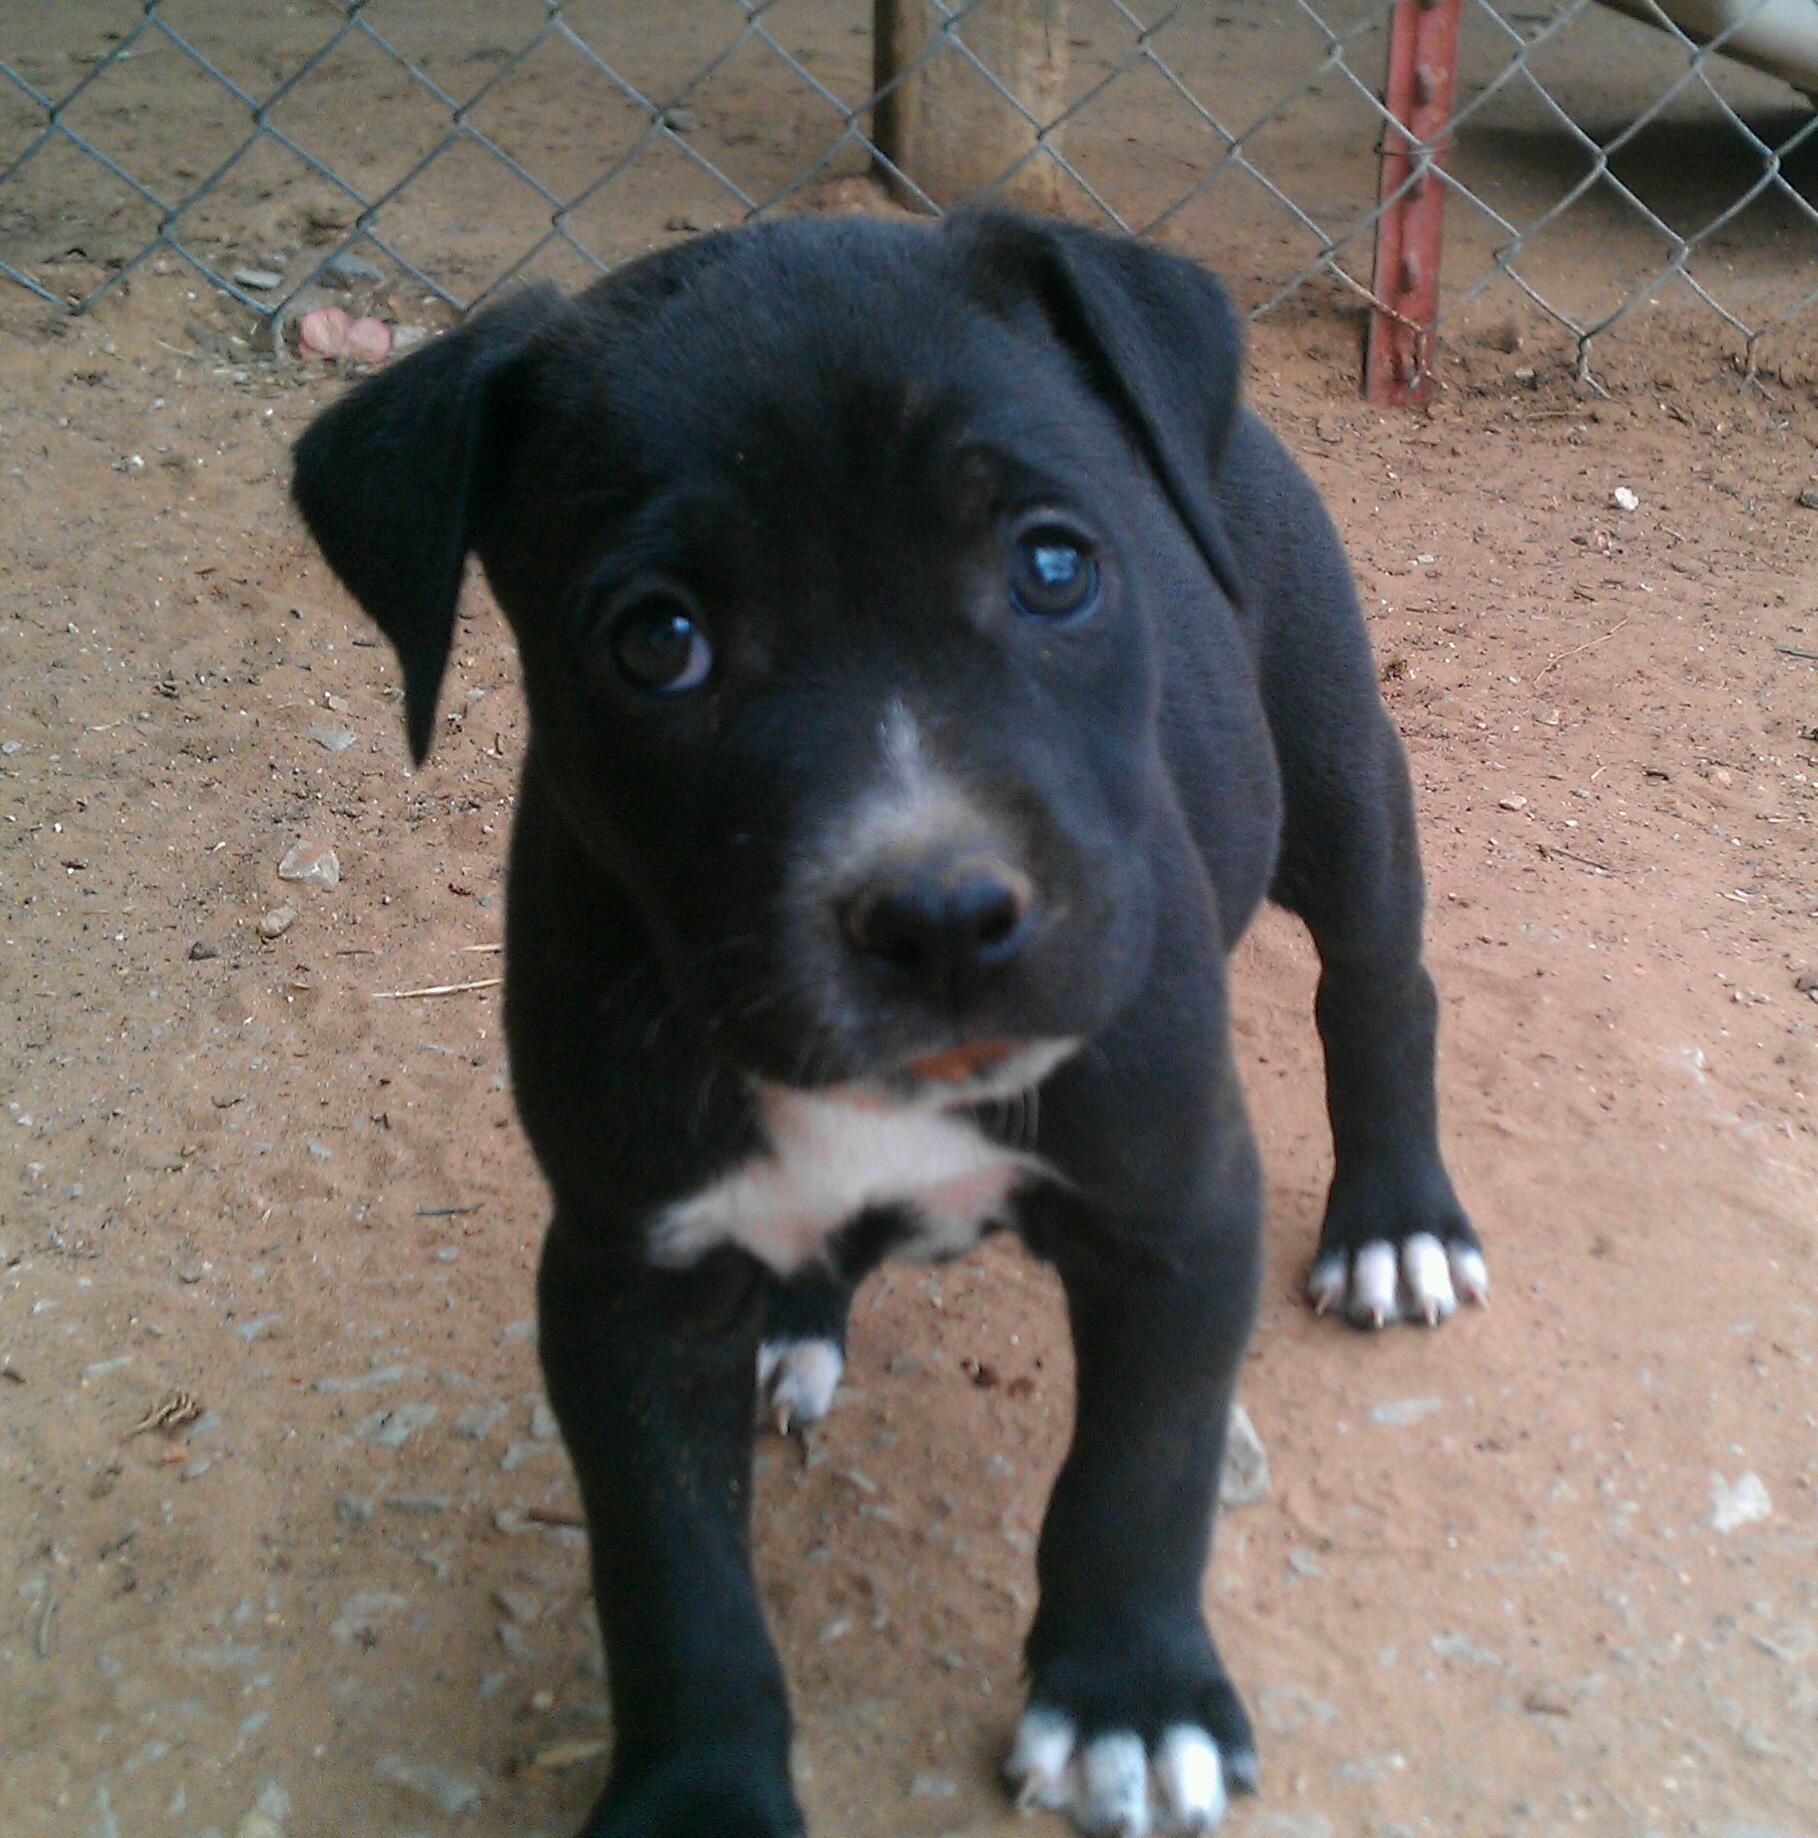 Baby Pitbull 3 Pitbull Puppies Black Pitbull Puppies Black